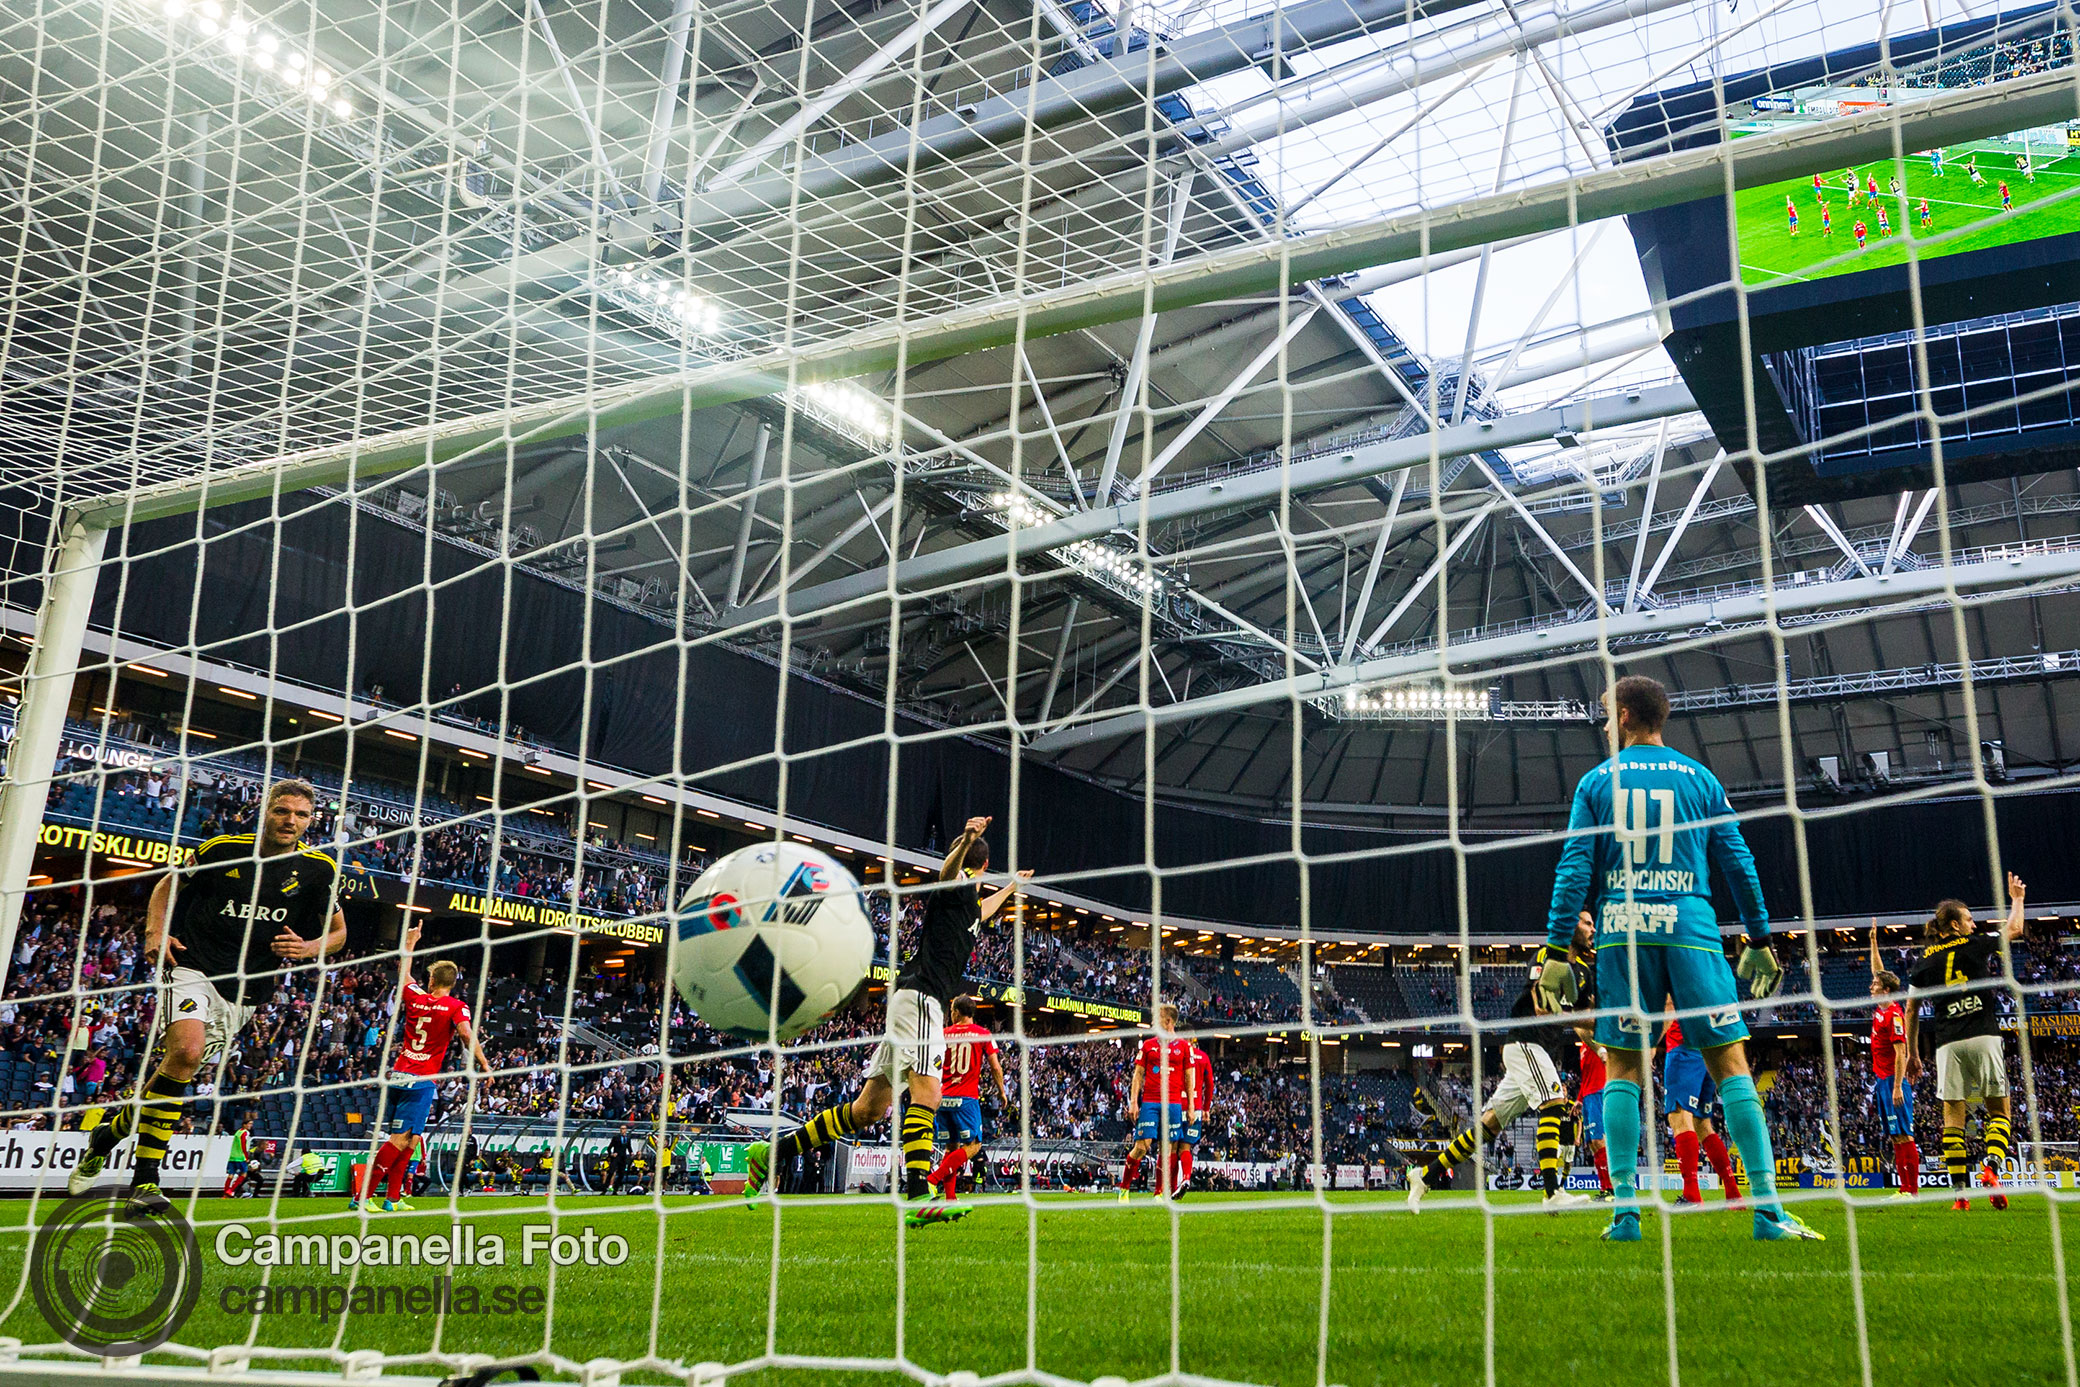 AIK comeback to win against Helsingborg - Michael Campanella Photography